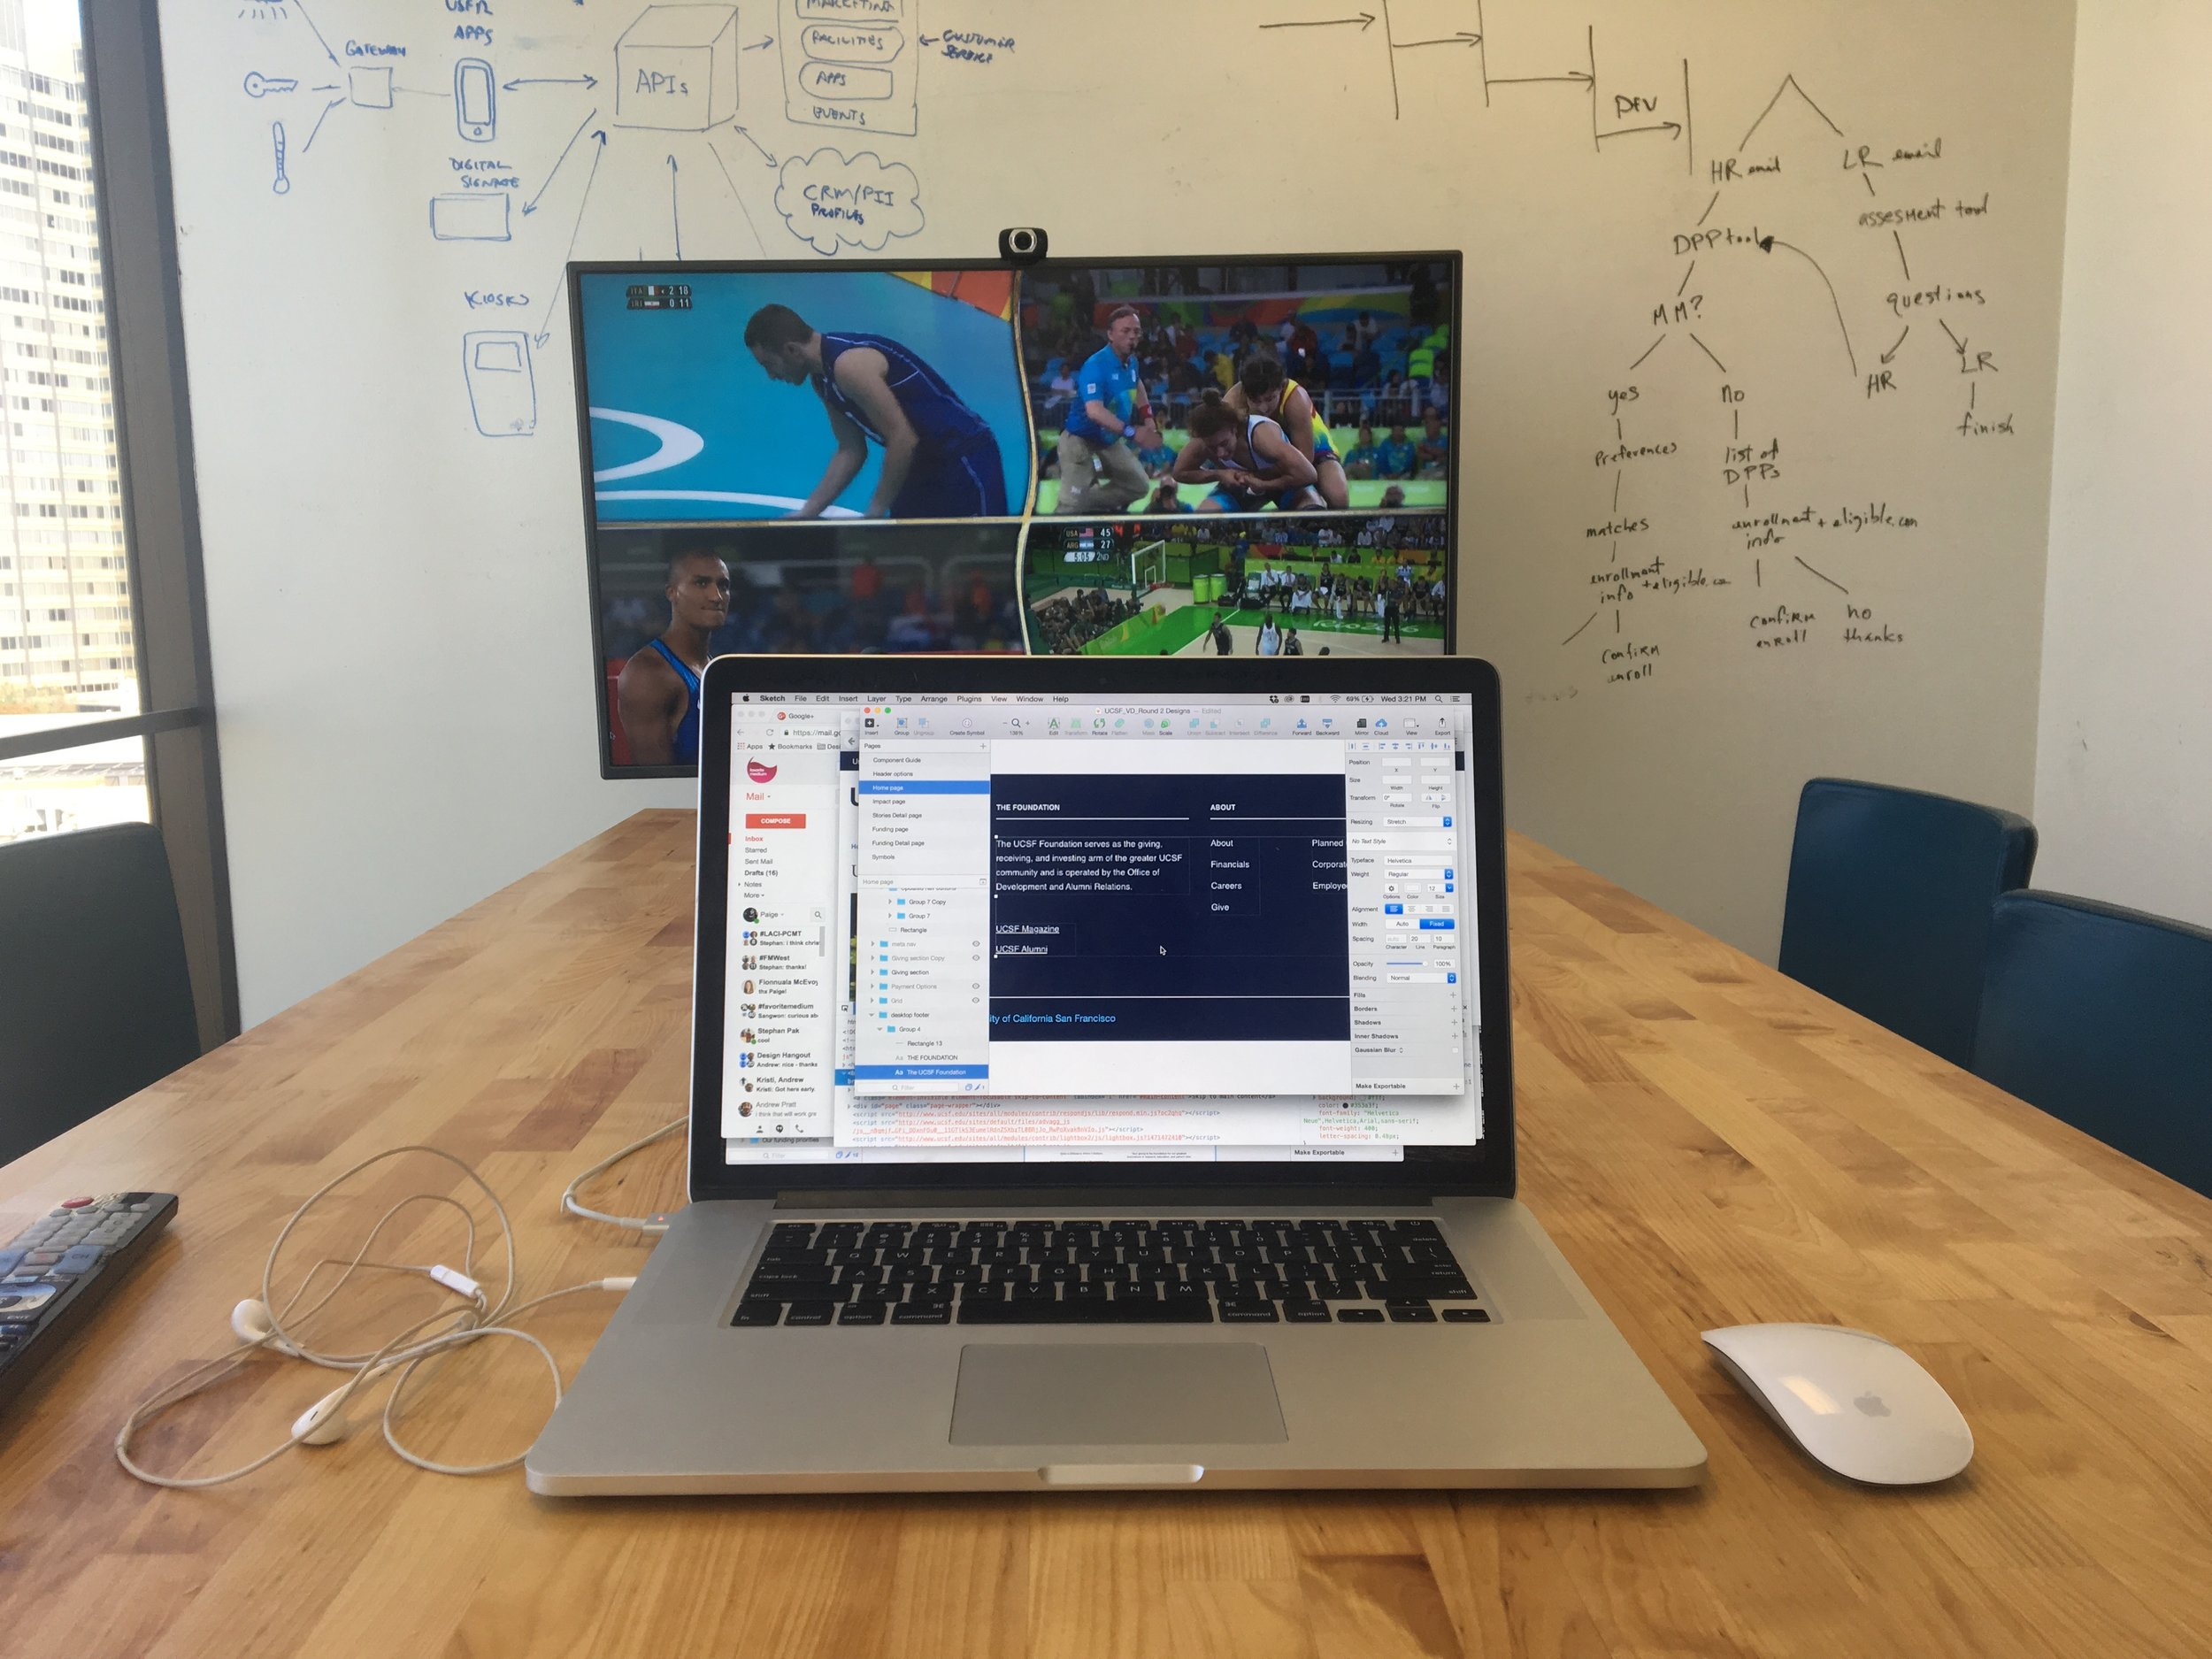 My typical setup with it's Olympic season. I don't care what sport it is, I want to watch it. It goes beyond a love for competition; I get into the underdog stories, the emotional impact, and the historical significance of it all. So naturally this is how my workspace looks for a couple weeks.